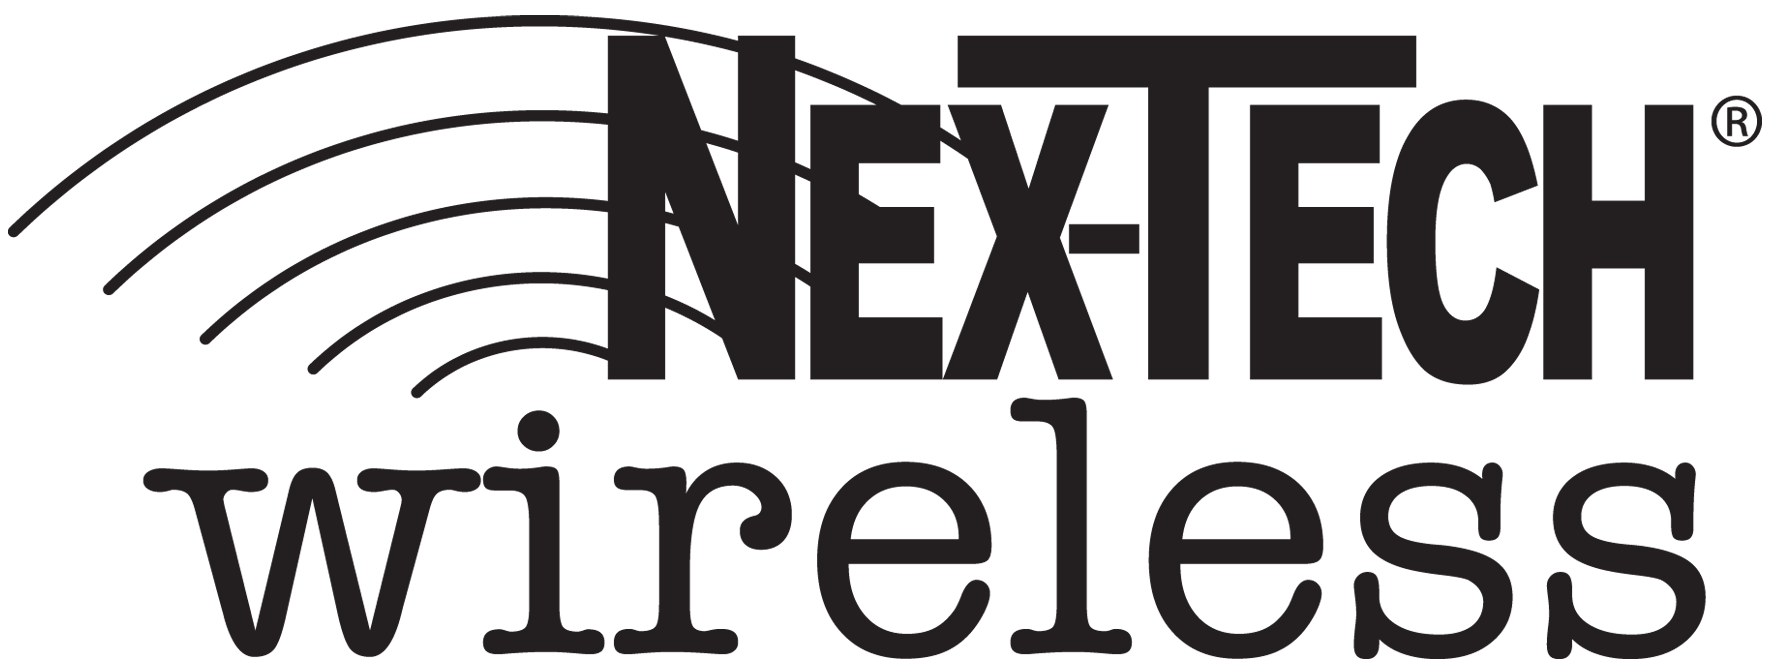 Business Cellular Phones and Plans I Nex-Tech Wireless